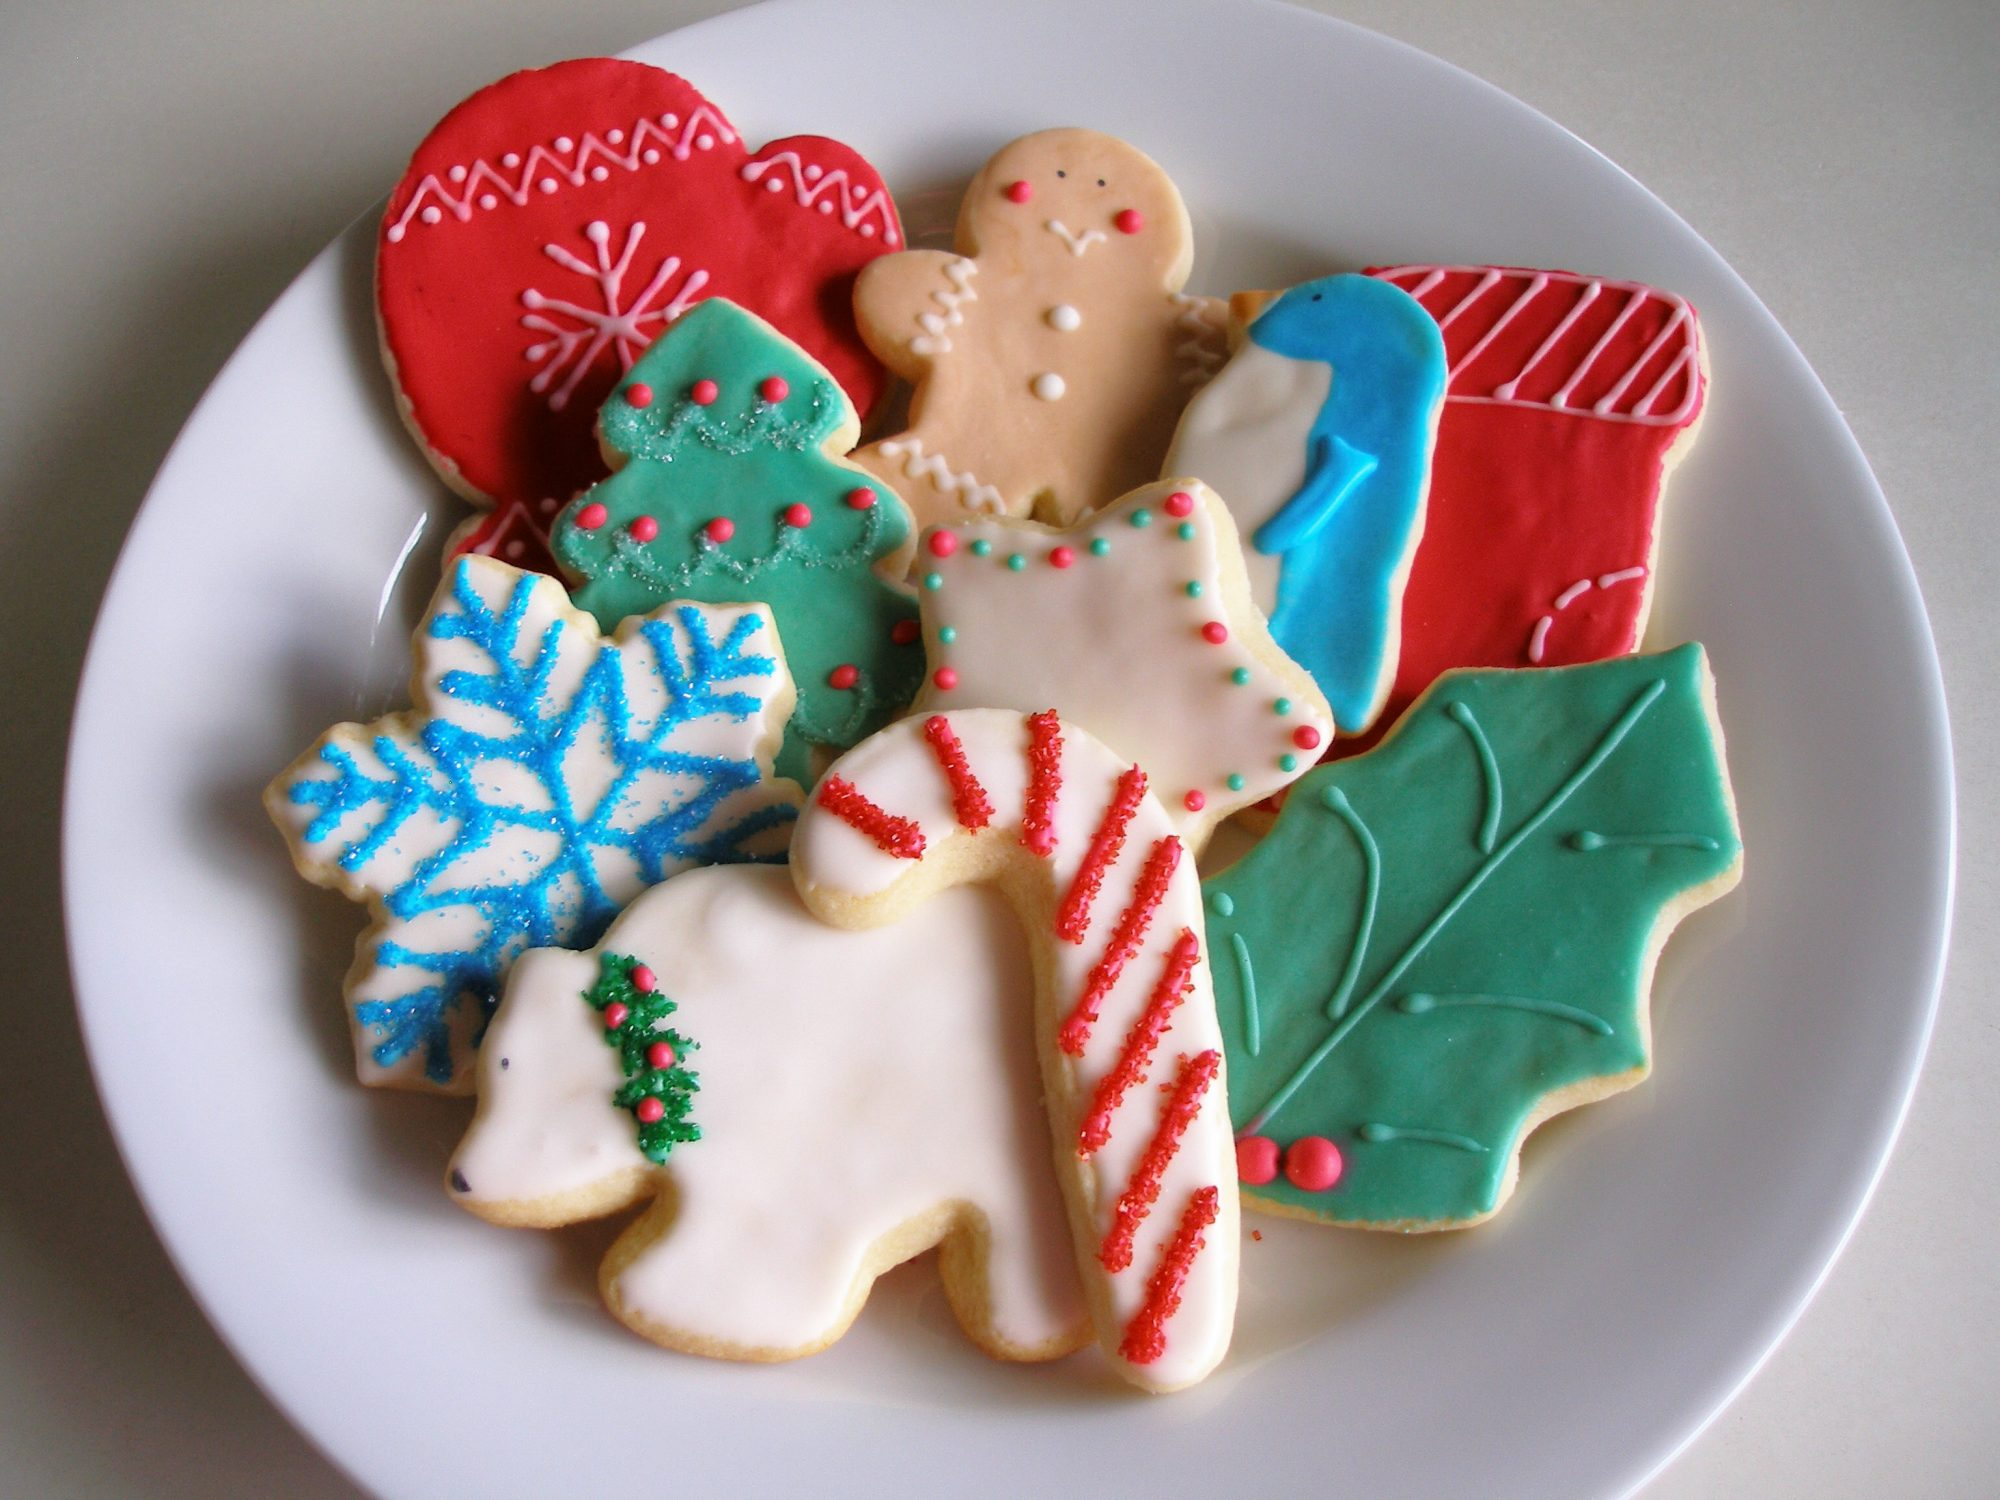 A plate of assorted frosted cookies: candy cane, polar bear with a wreath around its neck, snowflake, mitten, holly leaf, Christmas tree